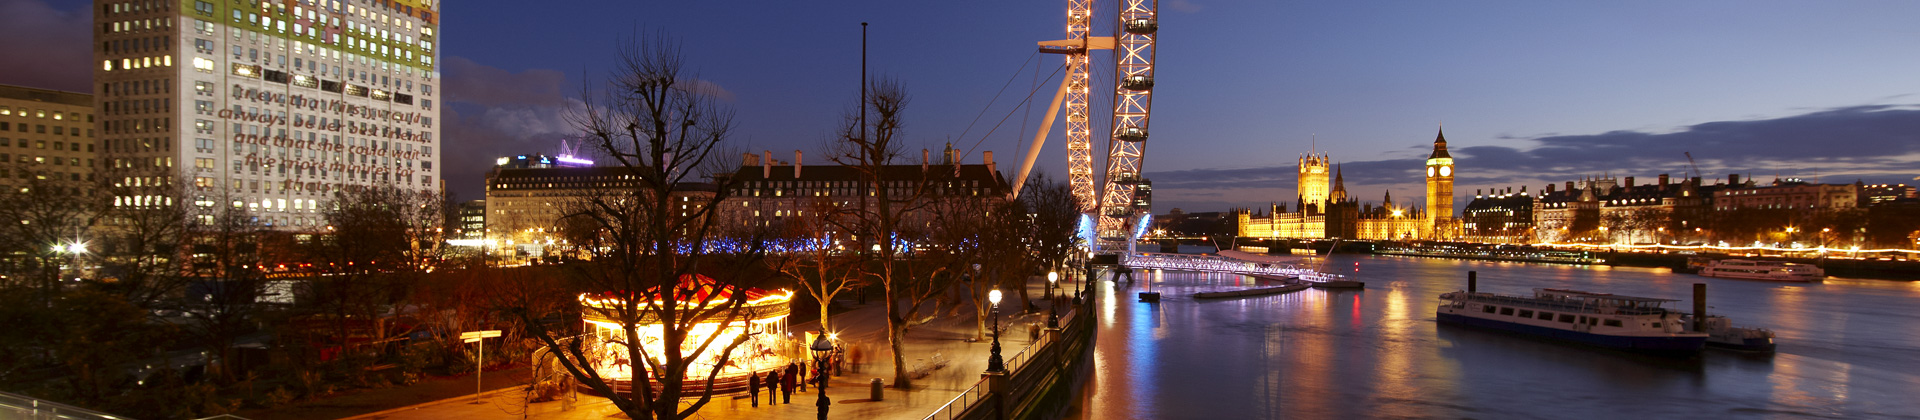 the Embankment (South Bank) with the London Eye, River Thames and the Palace of Westminster at dusk, London, England, UK